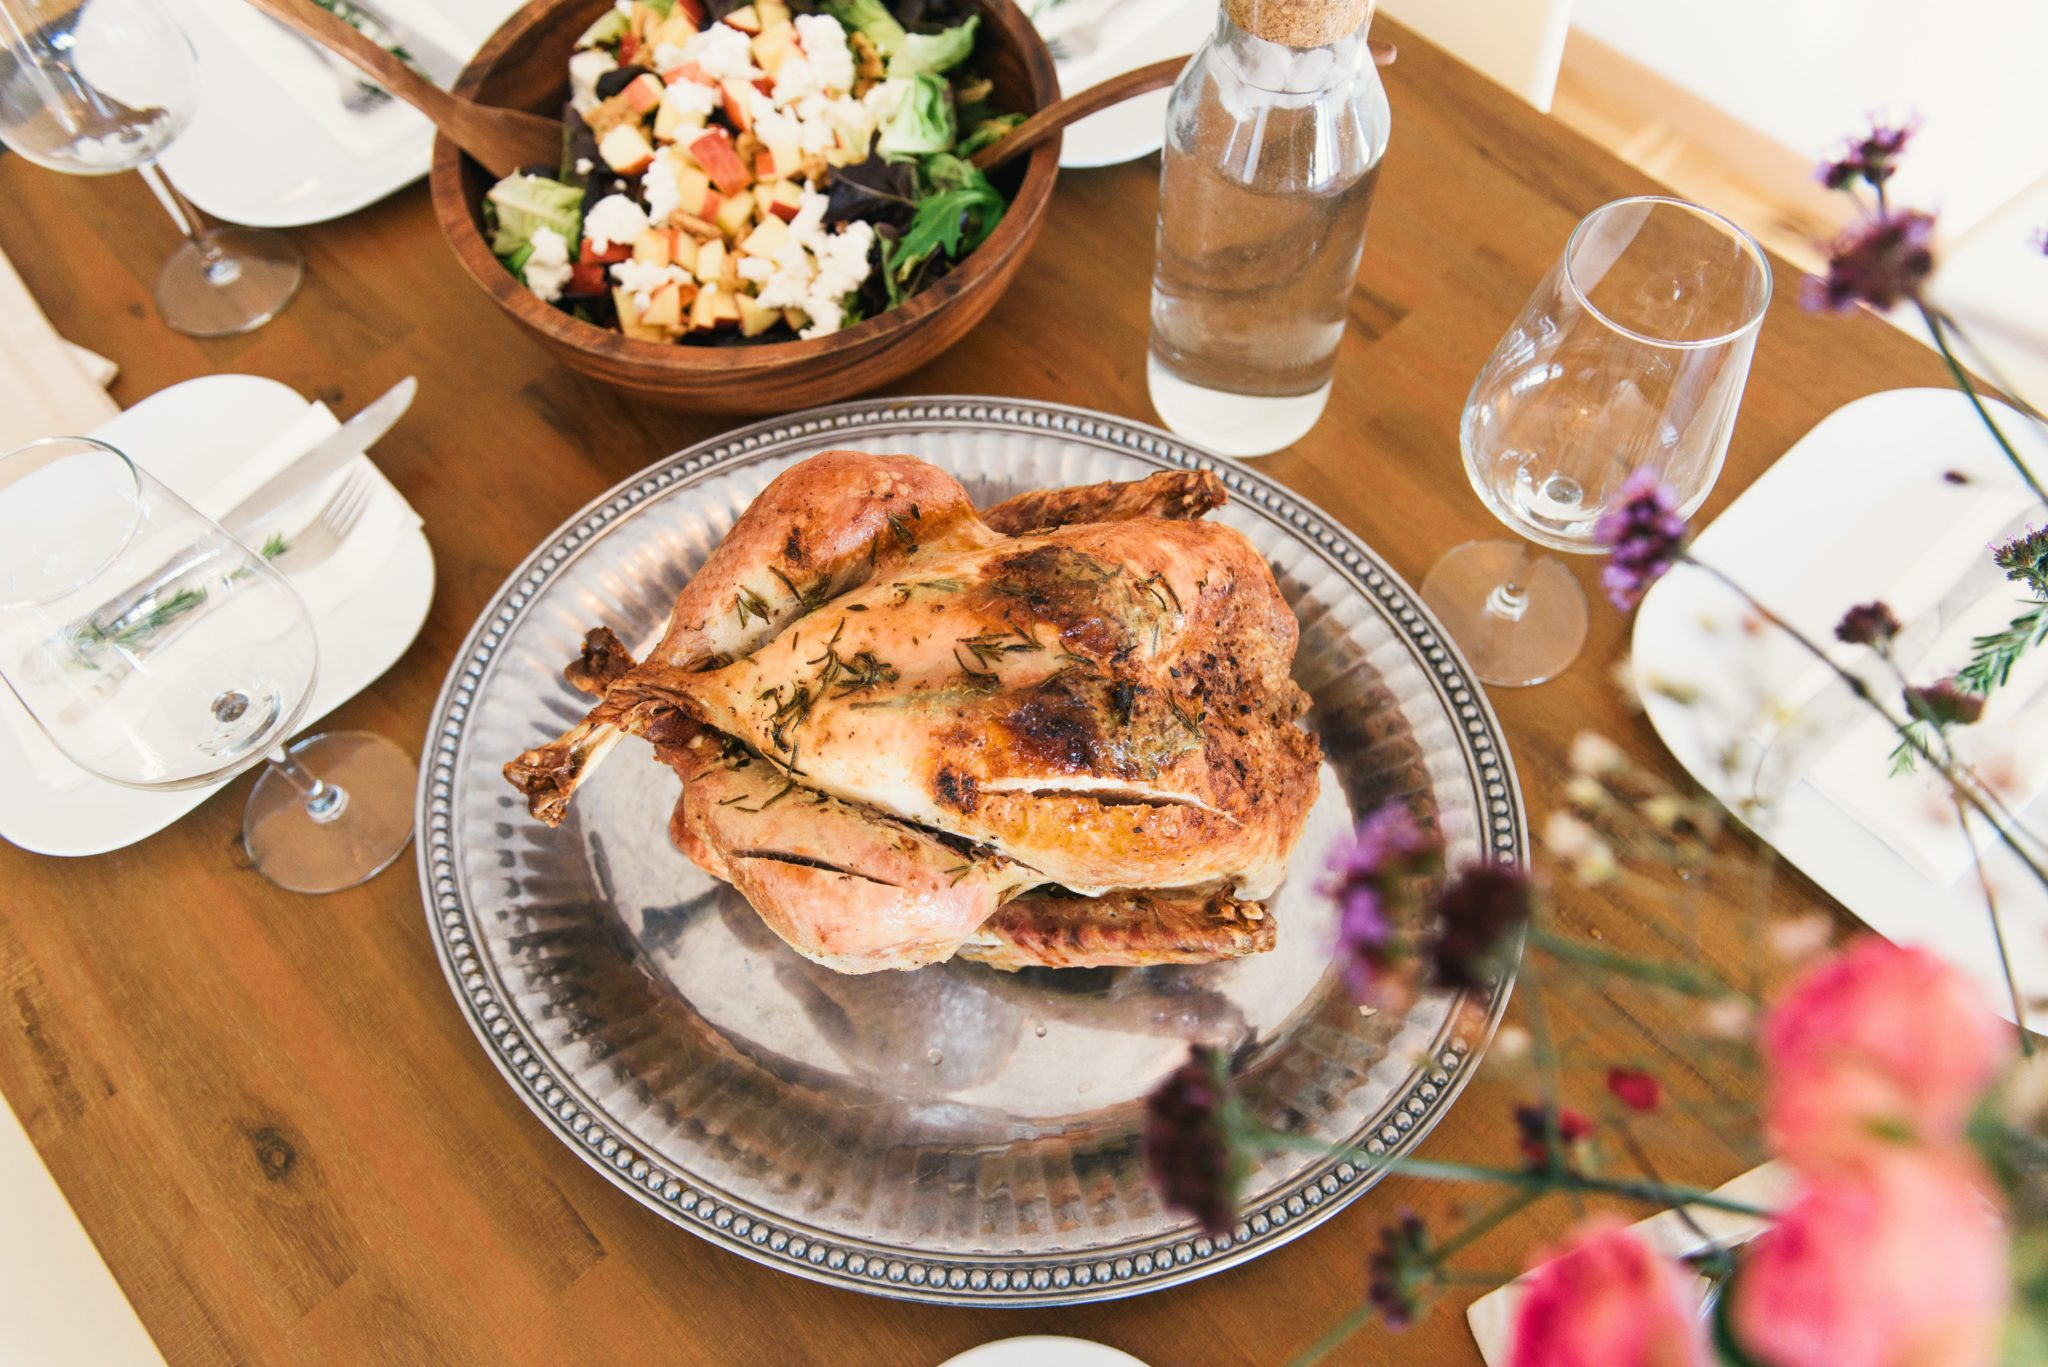 Rosemary and Sage Roasted Turkey (+ How to Make Homemade Gravy)